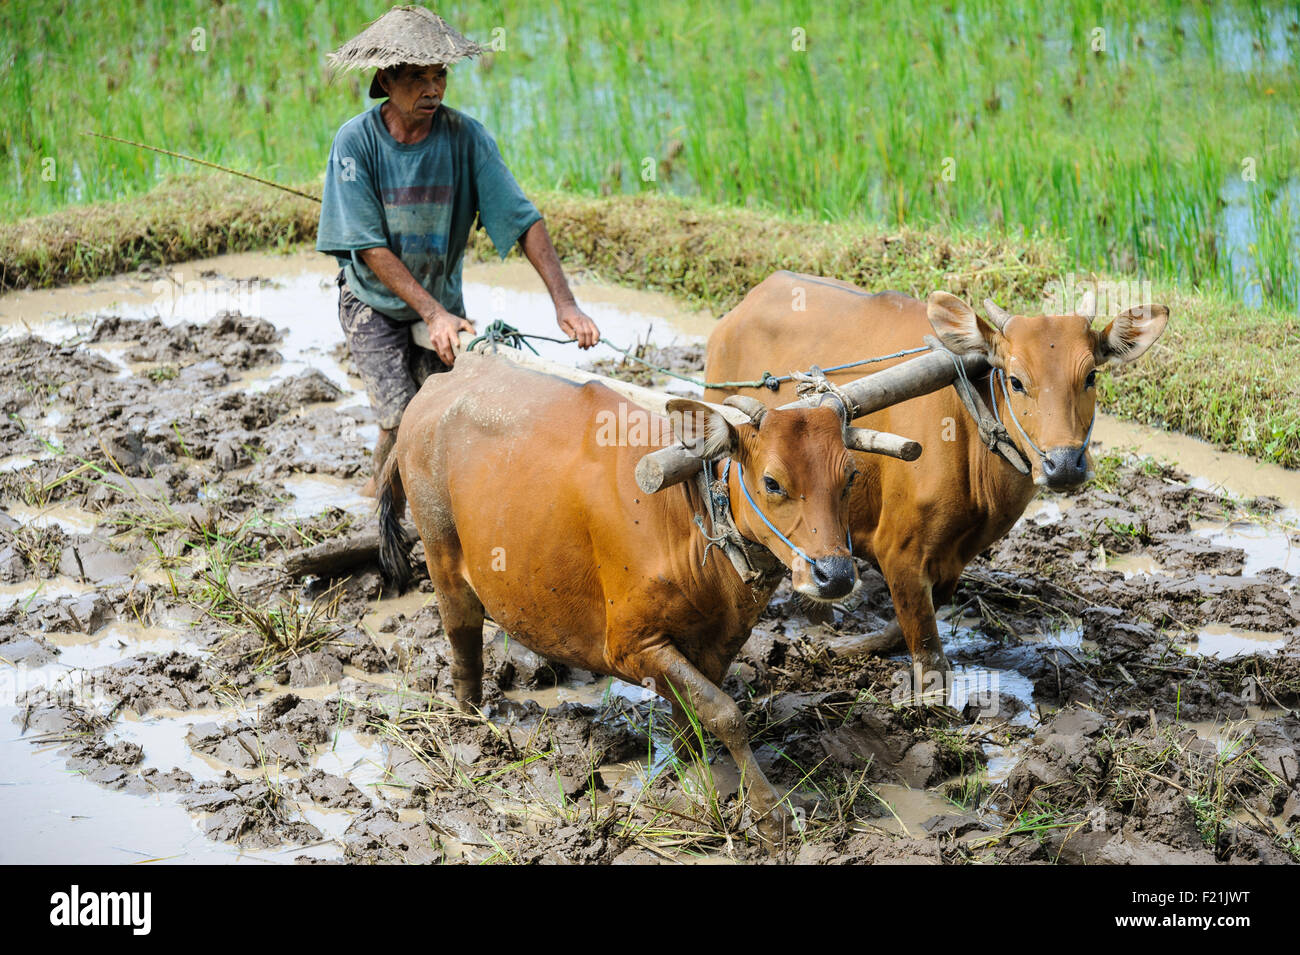 A farmer using oxen to prepare a paddy field for rice planting, Bali, Indonesia. - Stock Image